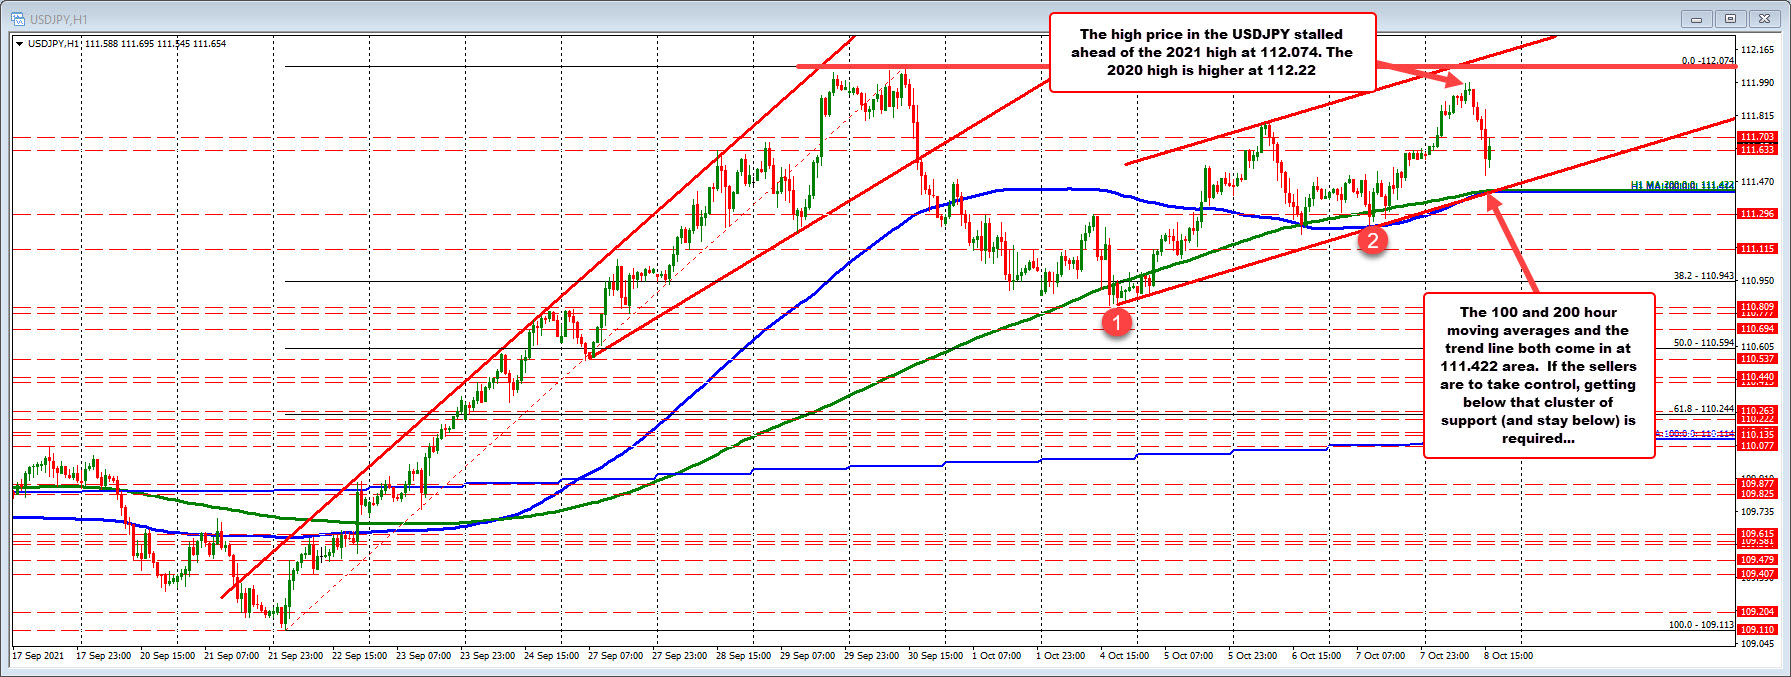 USDJPY remains above its converged 100 and 200 hour moving averages